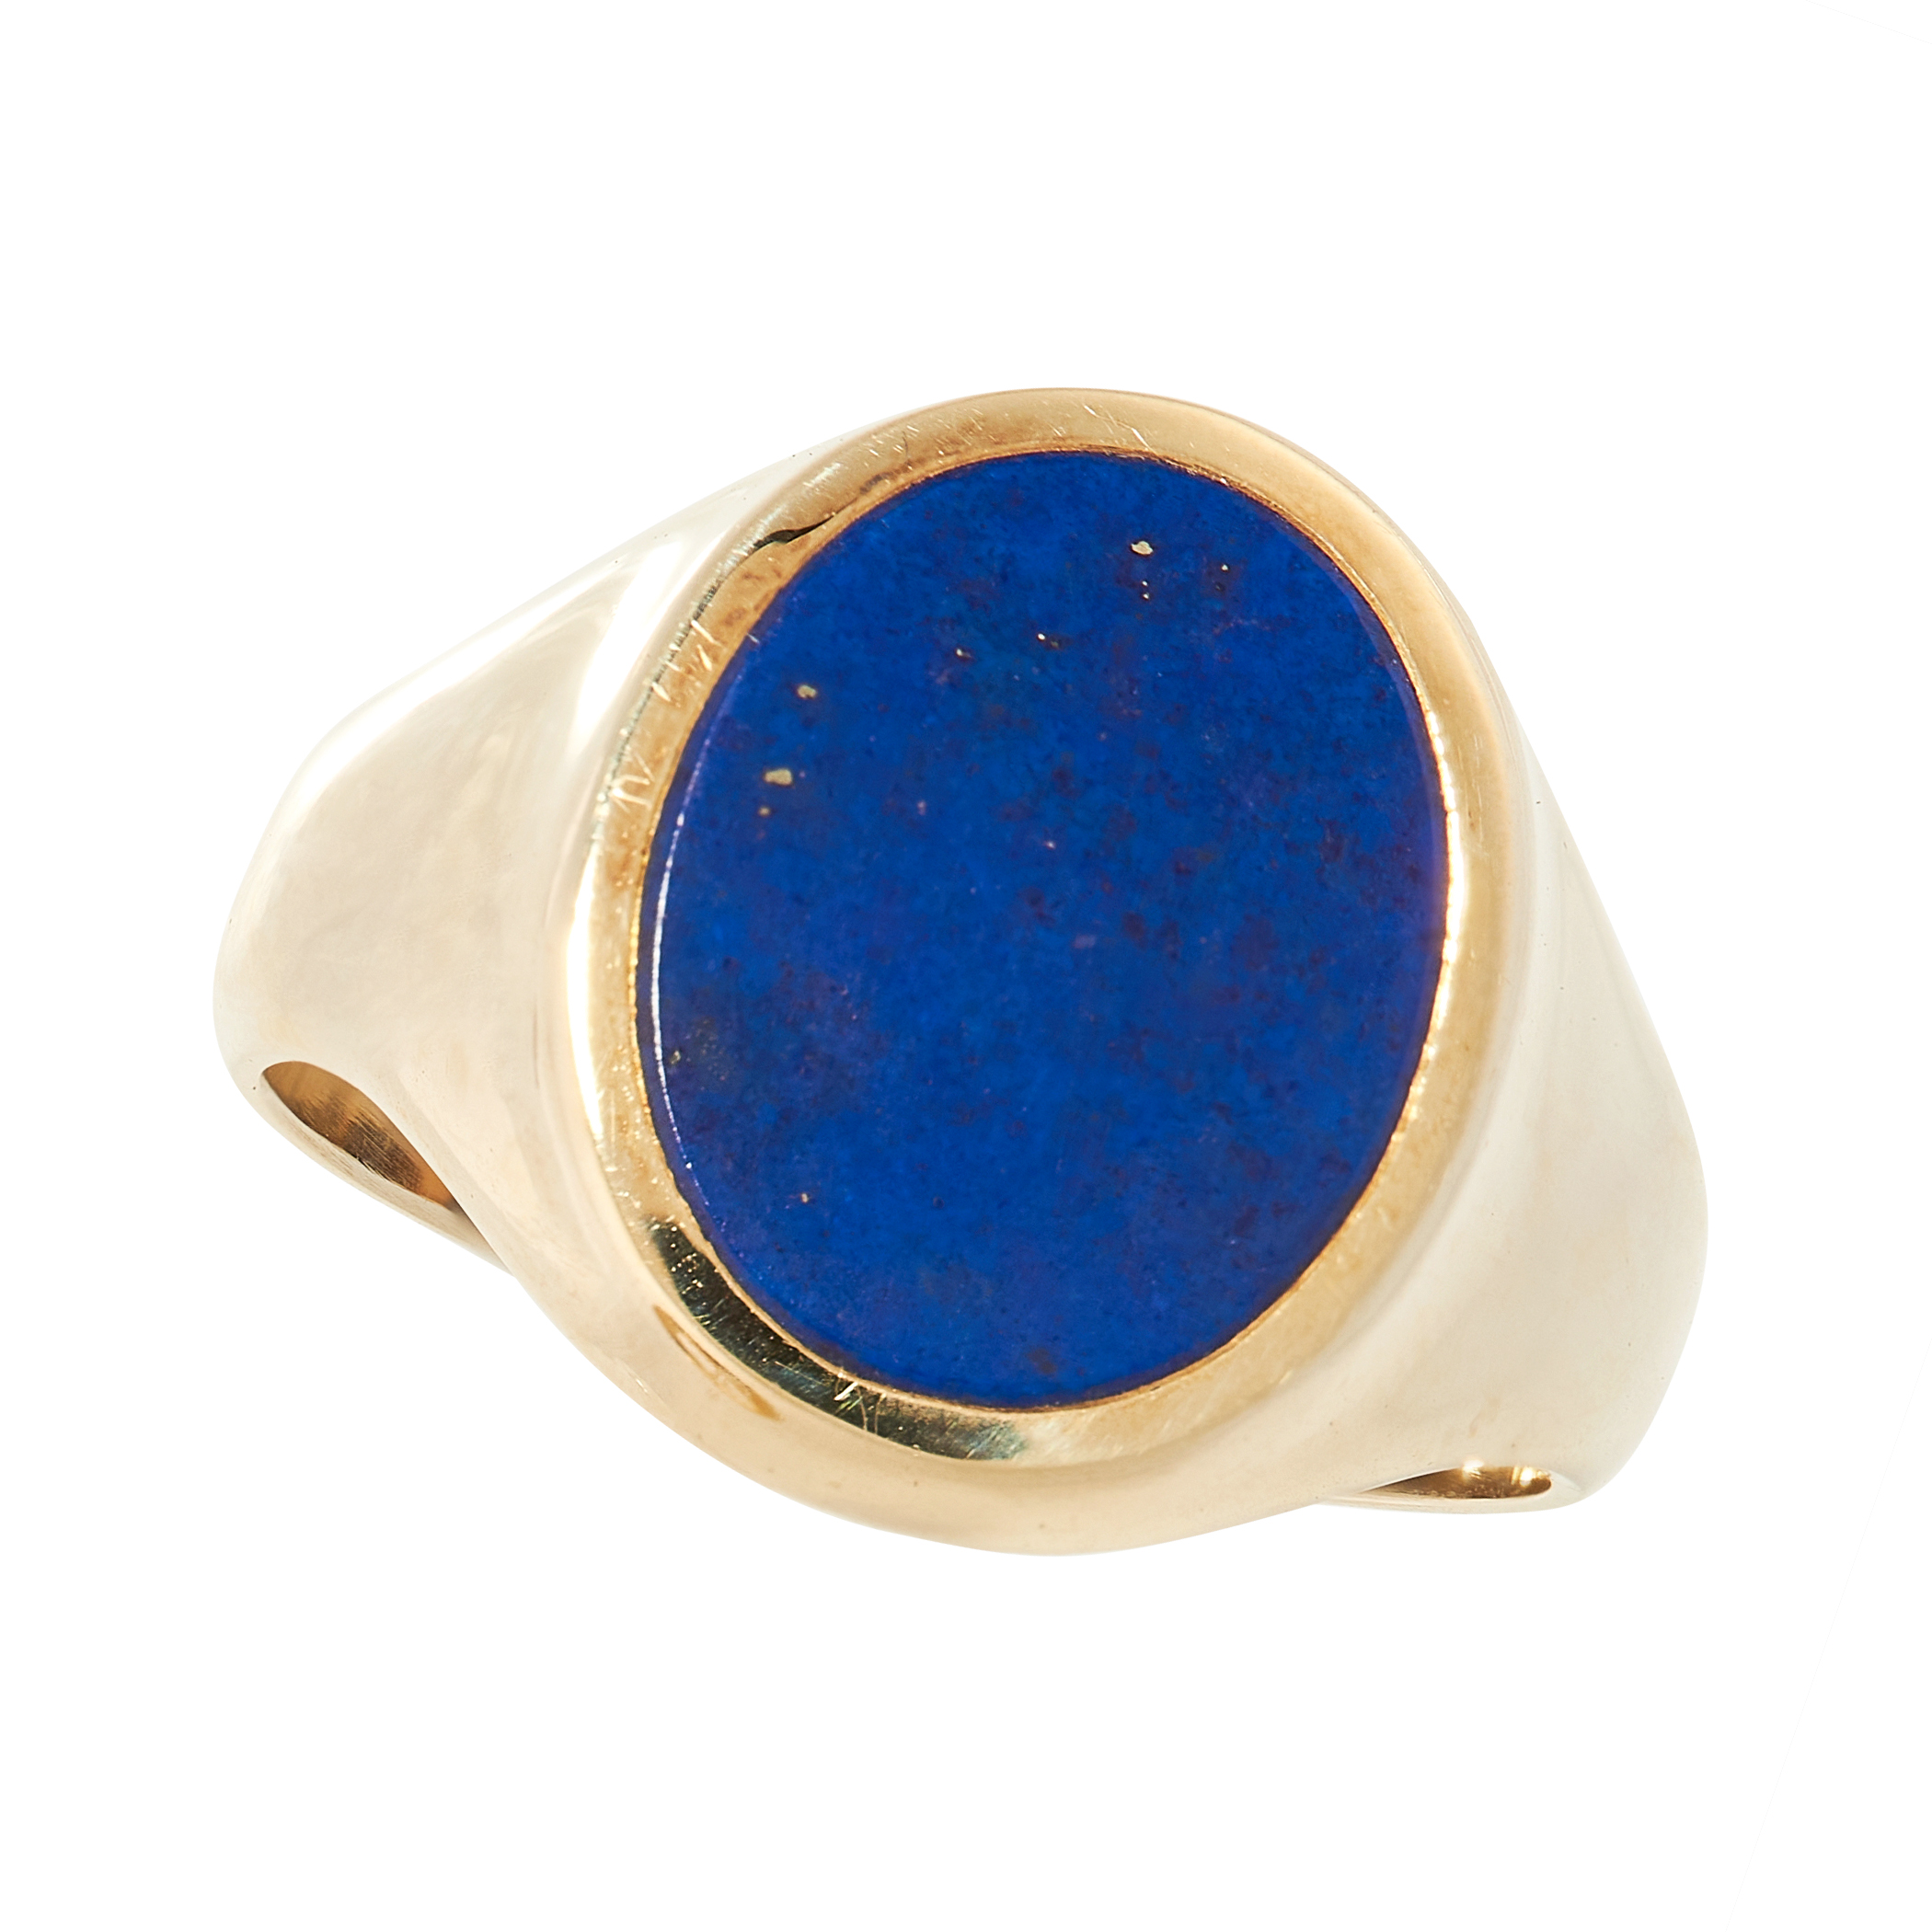 A LAPIS LAZULI SIGNET RING in yellow gold, the tapered band set with a polished oval piece of